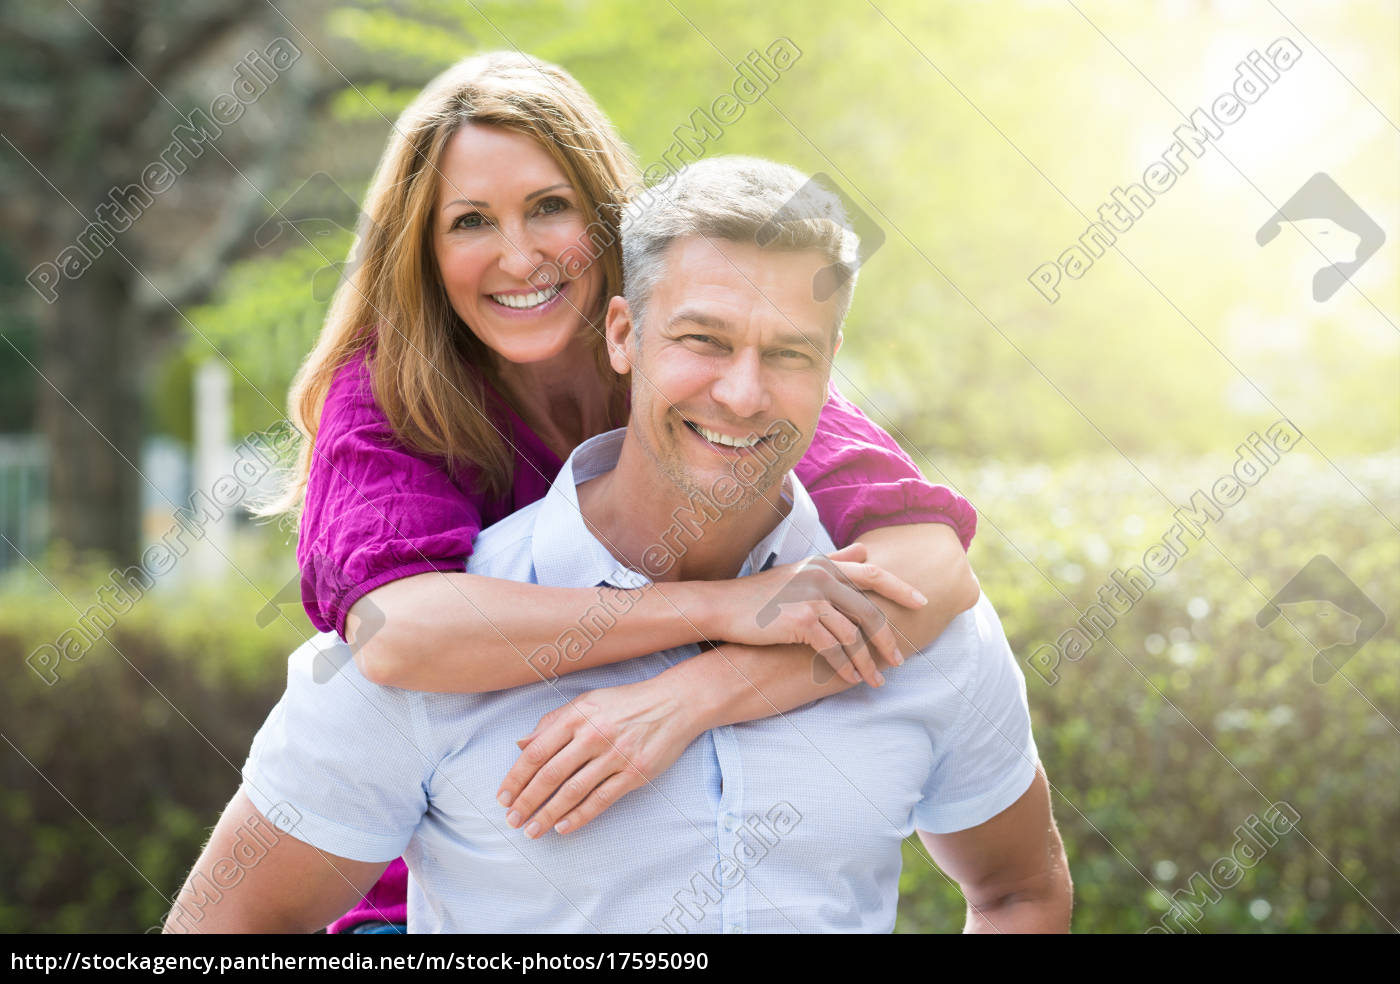 portrait, of, happy, couple - 17595090